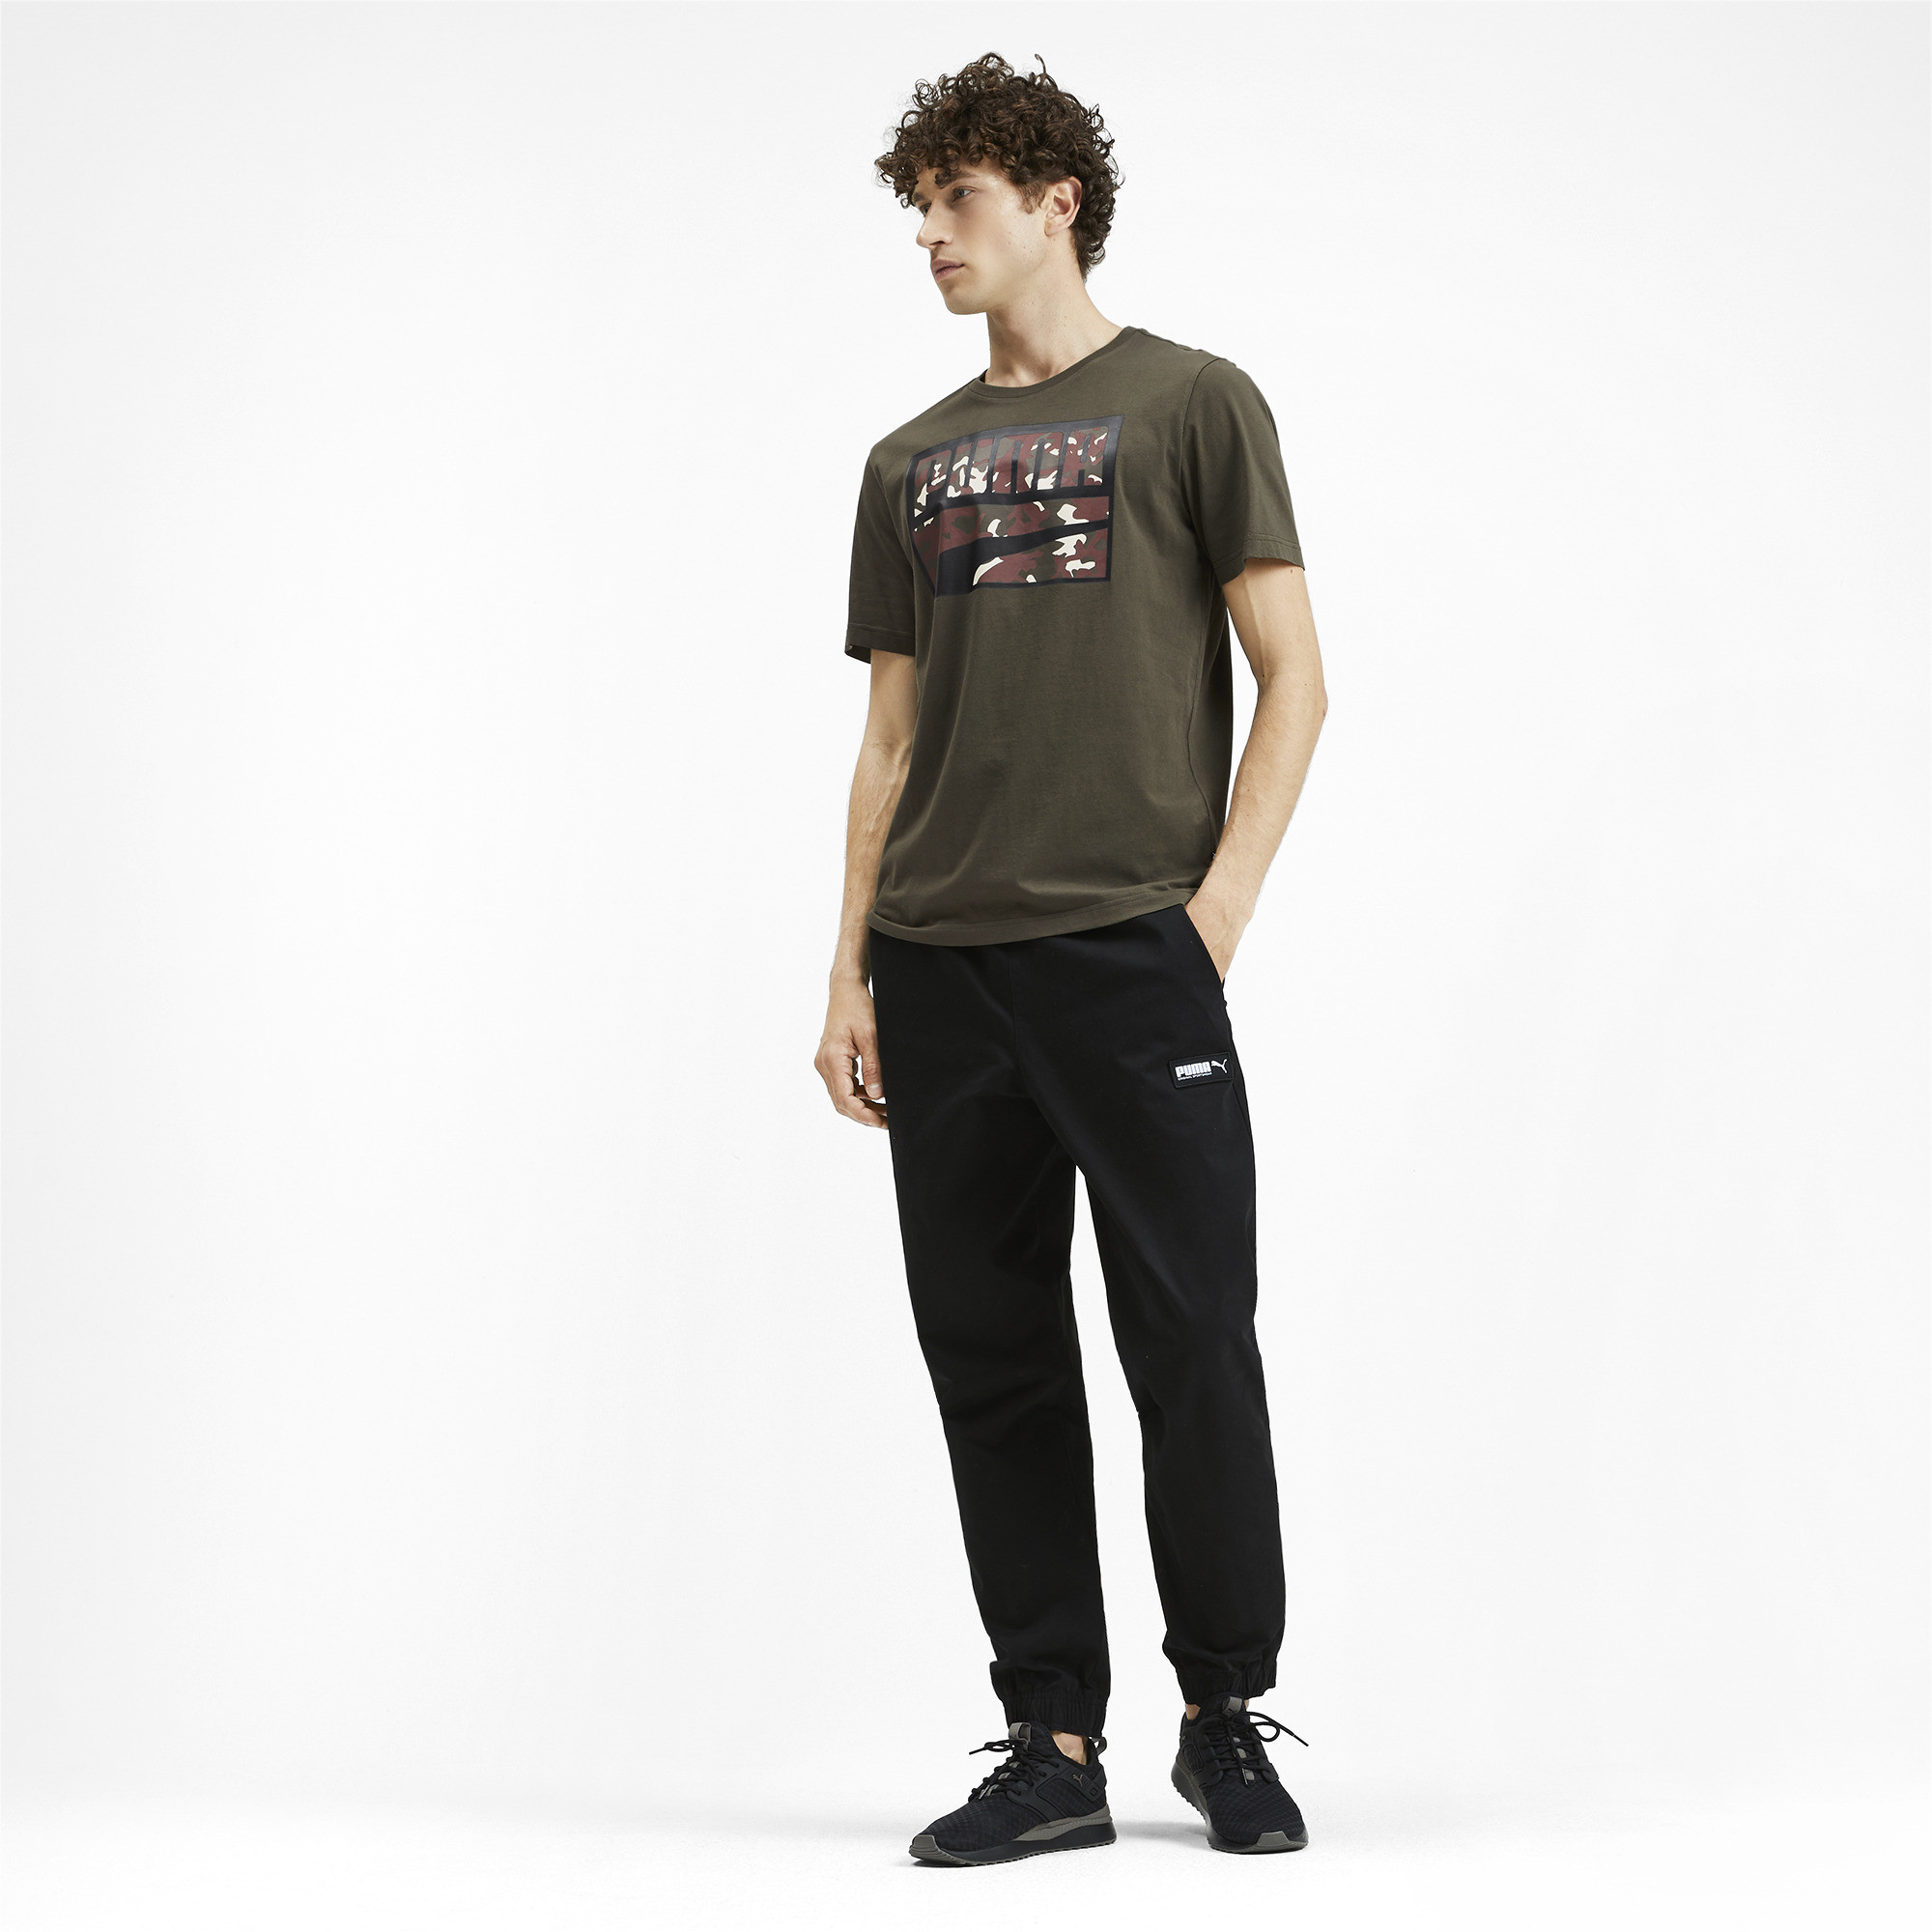 PUMA-Rebel-Camo-Filled-Men-039-s-Tee-Men-Tee-Basics thumbnail 11